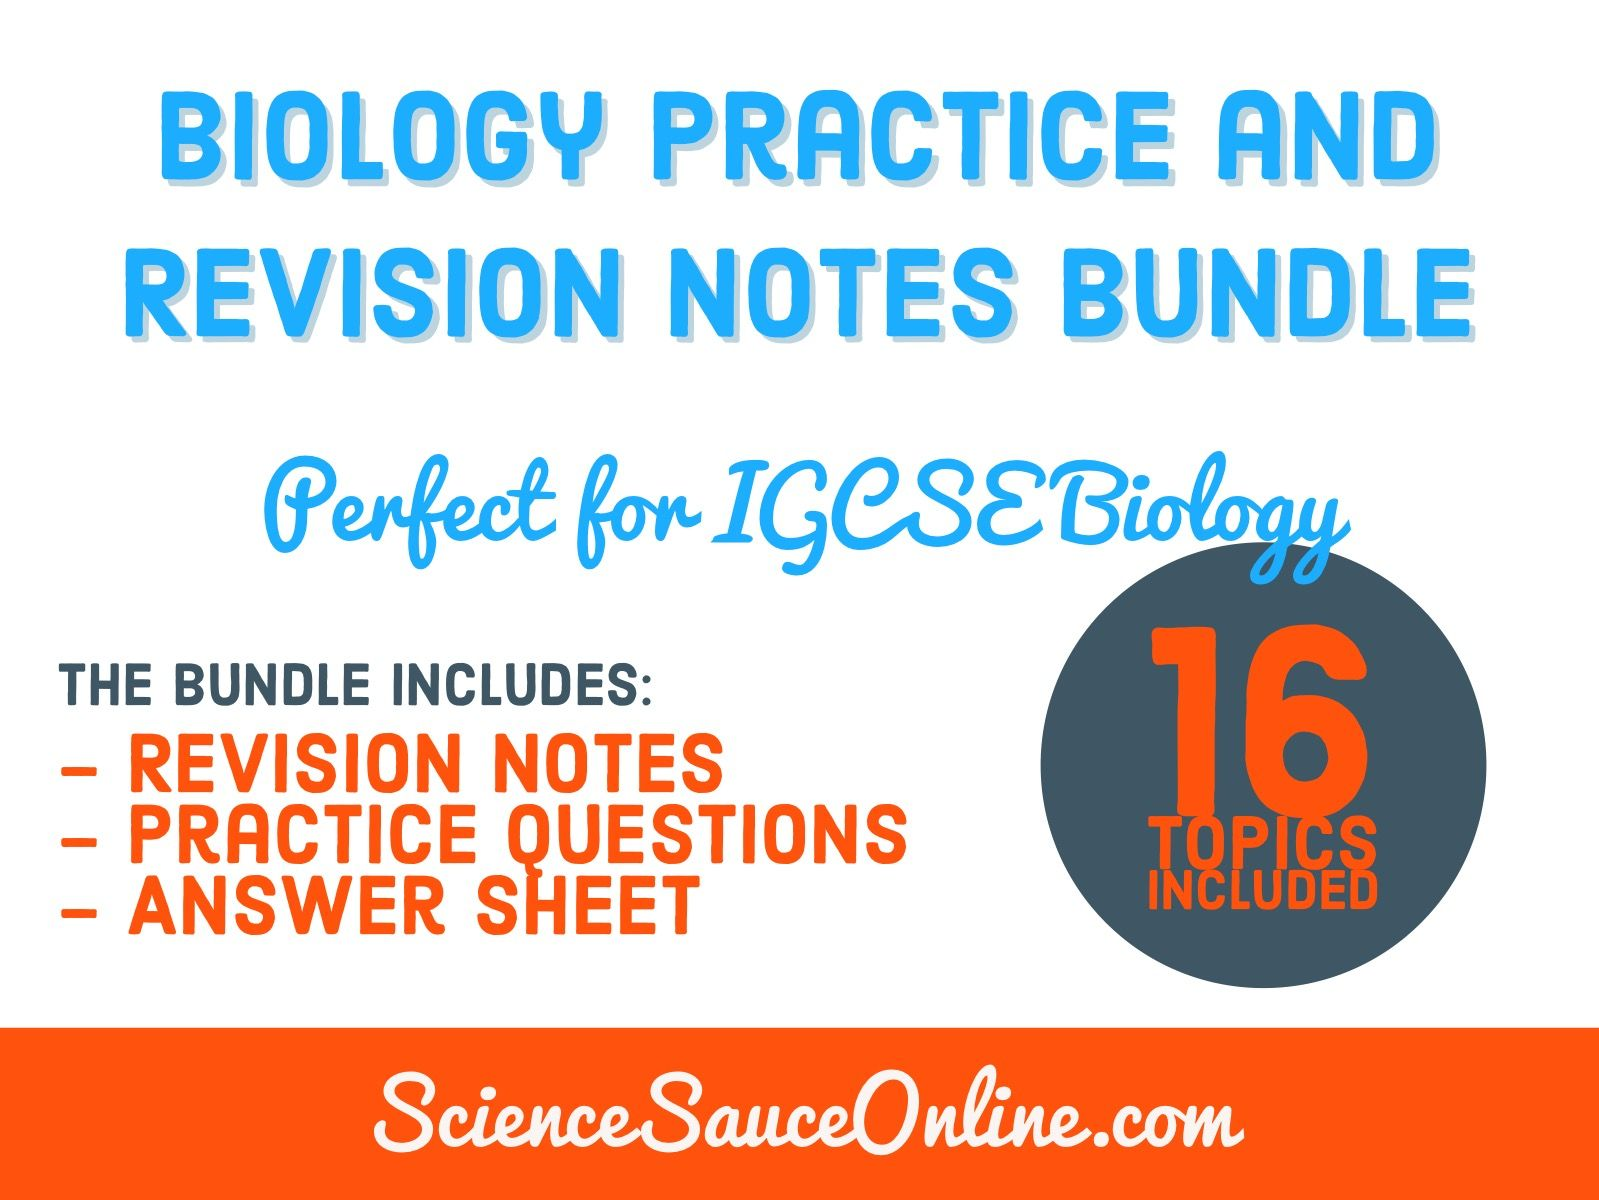 Biology Practice and Revision Notes Bundle (Big discount)